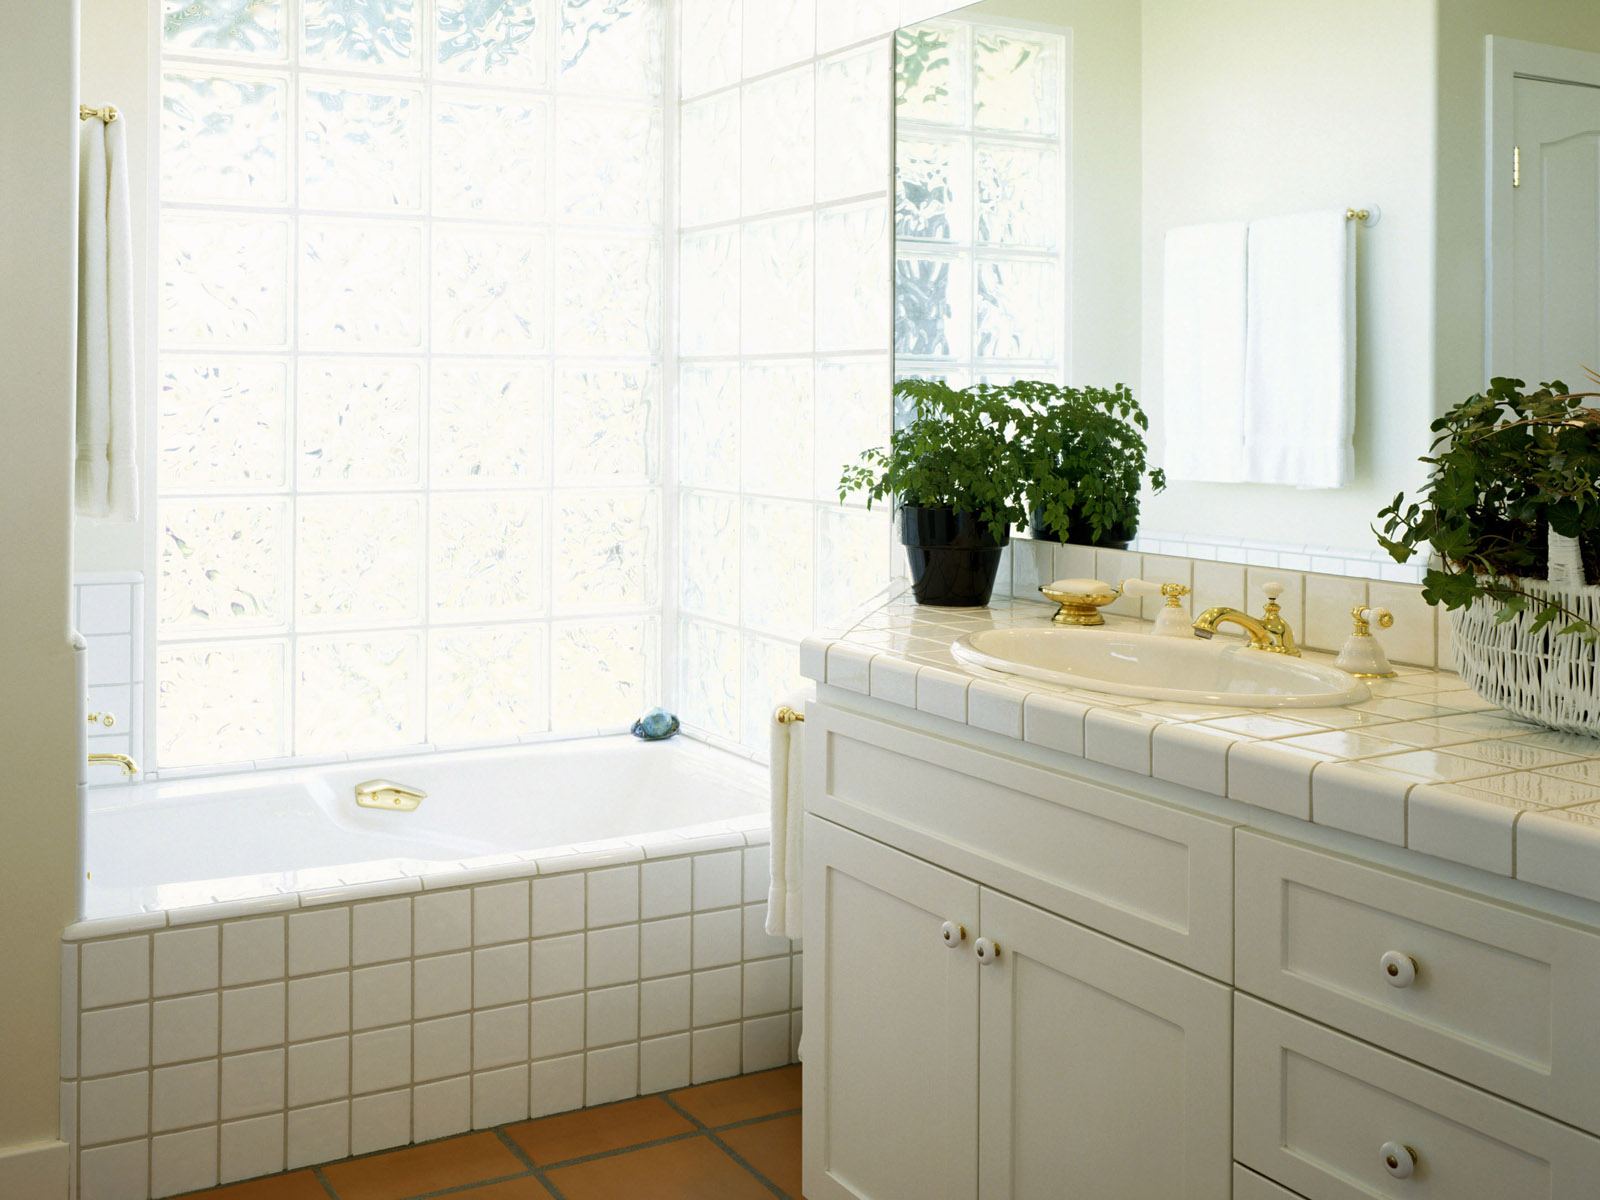 Western Home Decorating: Bath rooms and toilets designs